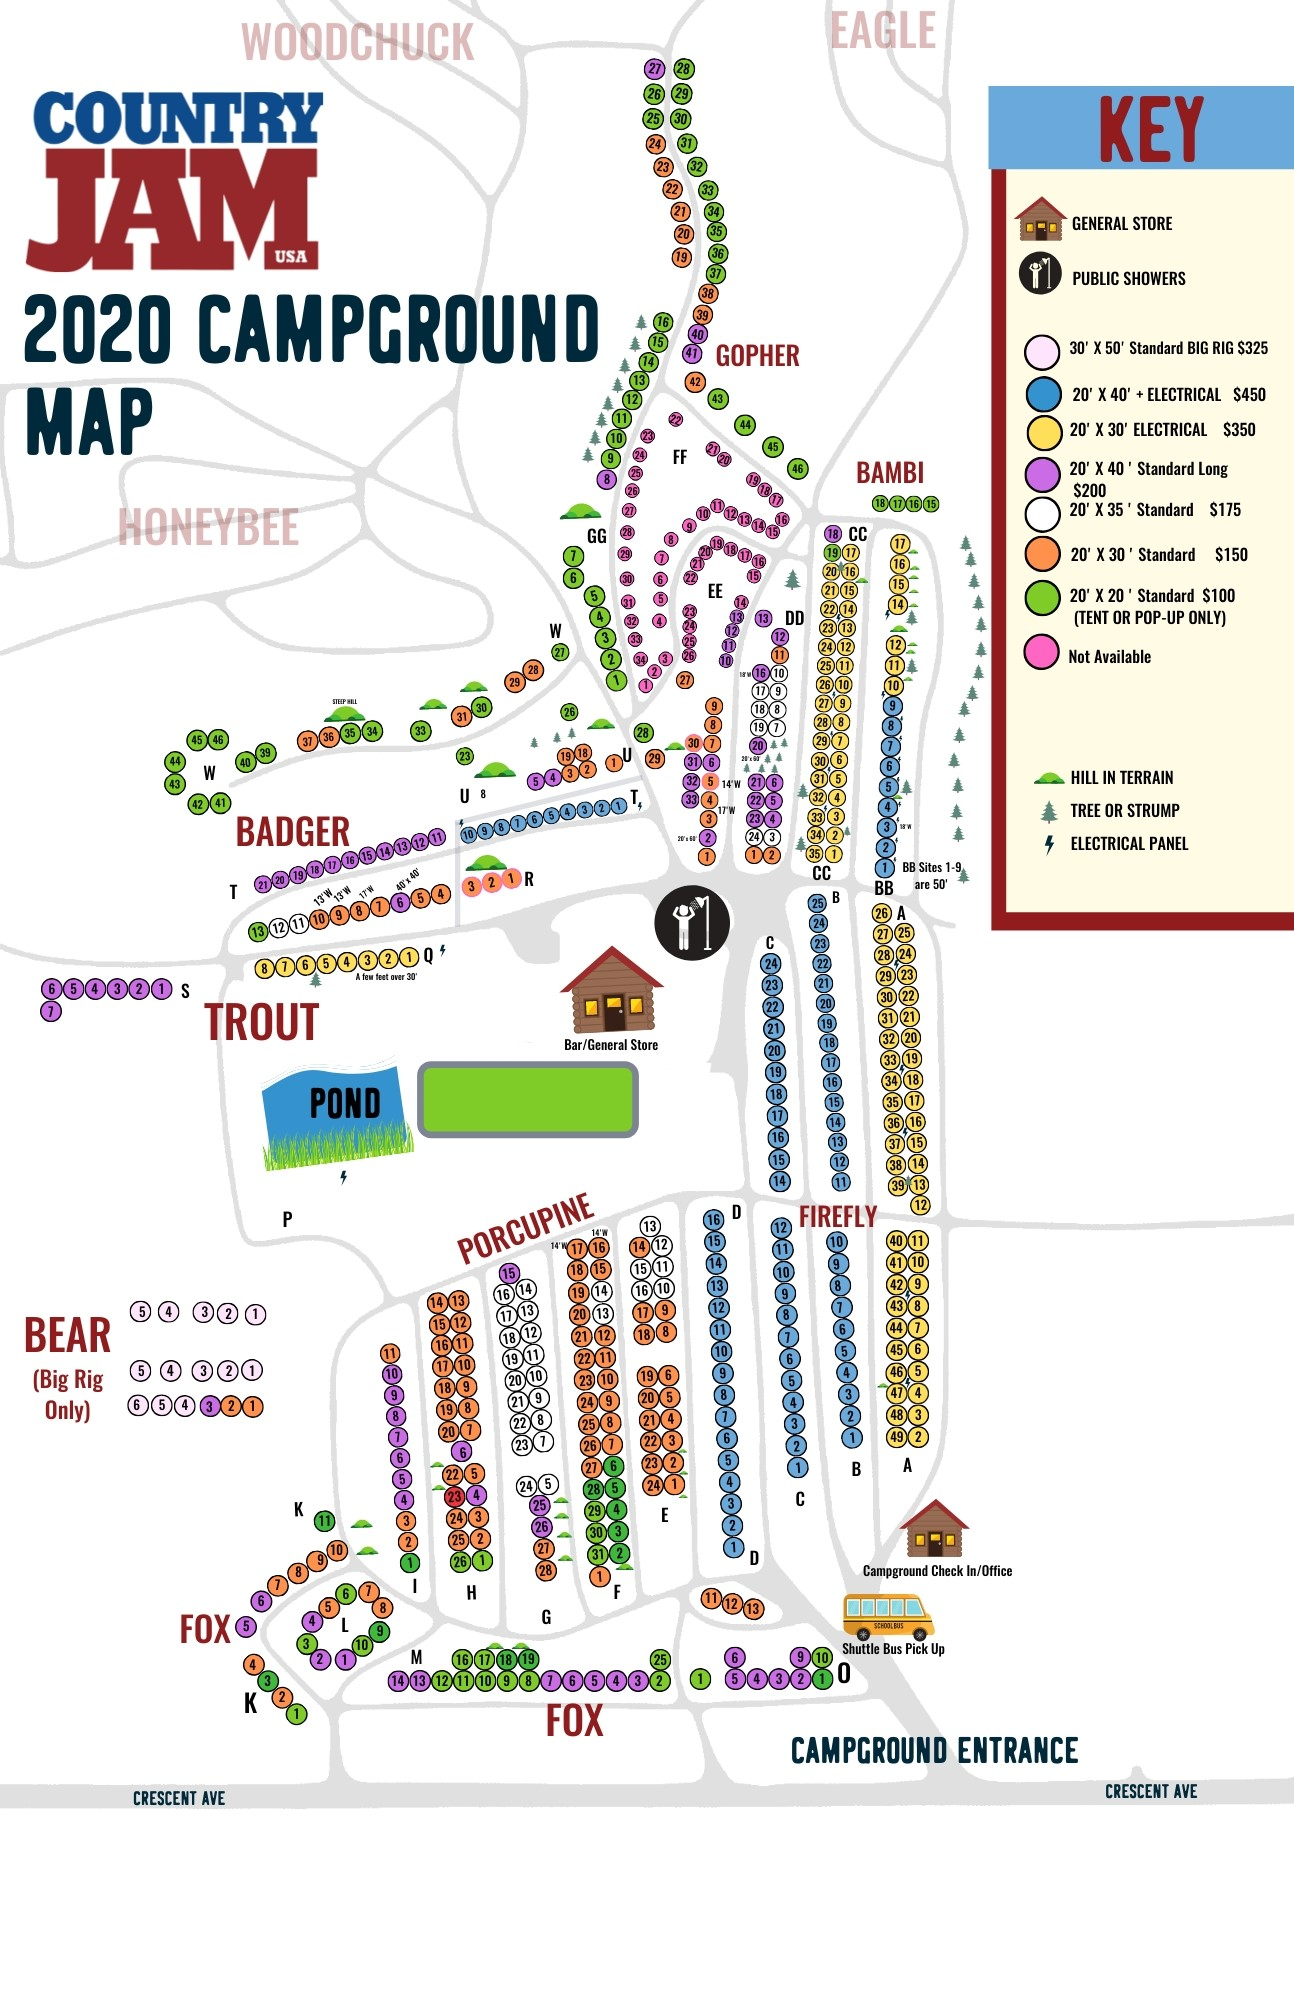 Camping At Country Jam | Country Music Festival - Eau Claire, WI on restroom map, dorm room map, summer vacation map, frontier town ocean city md map, international food map, tarp map, travling map, underground lakes map, the mountains map, fishing map, fatality map, campground map, hiking map, forest areas map, places to go map, vacation travel map, treasure map, dangerous animals map, parks map,